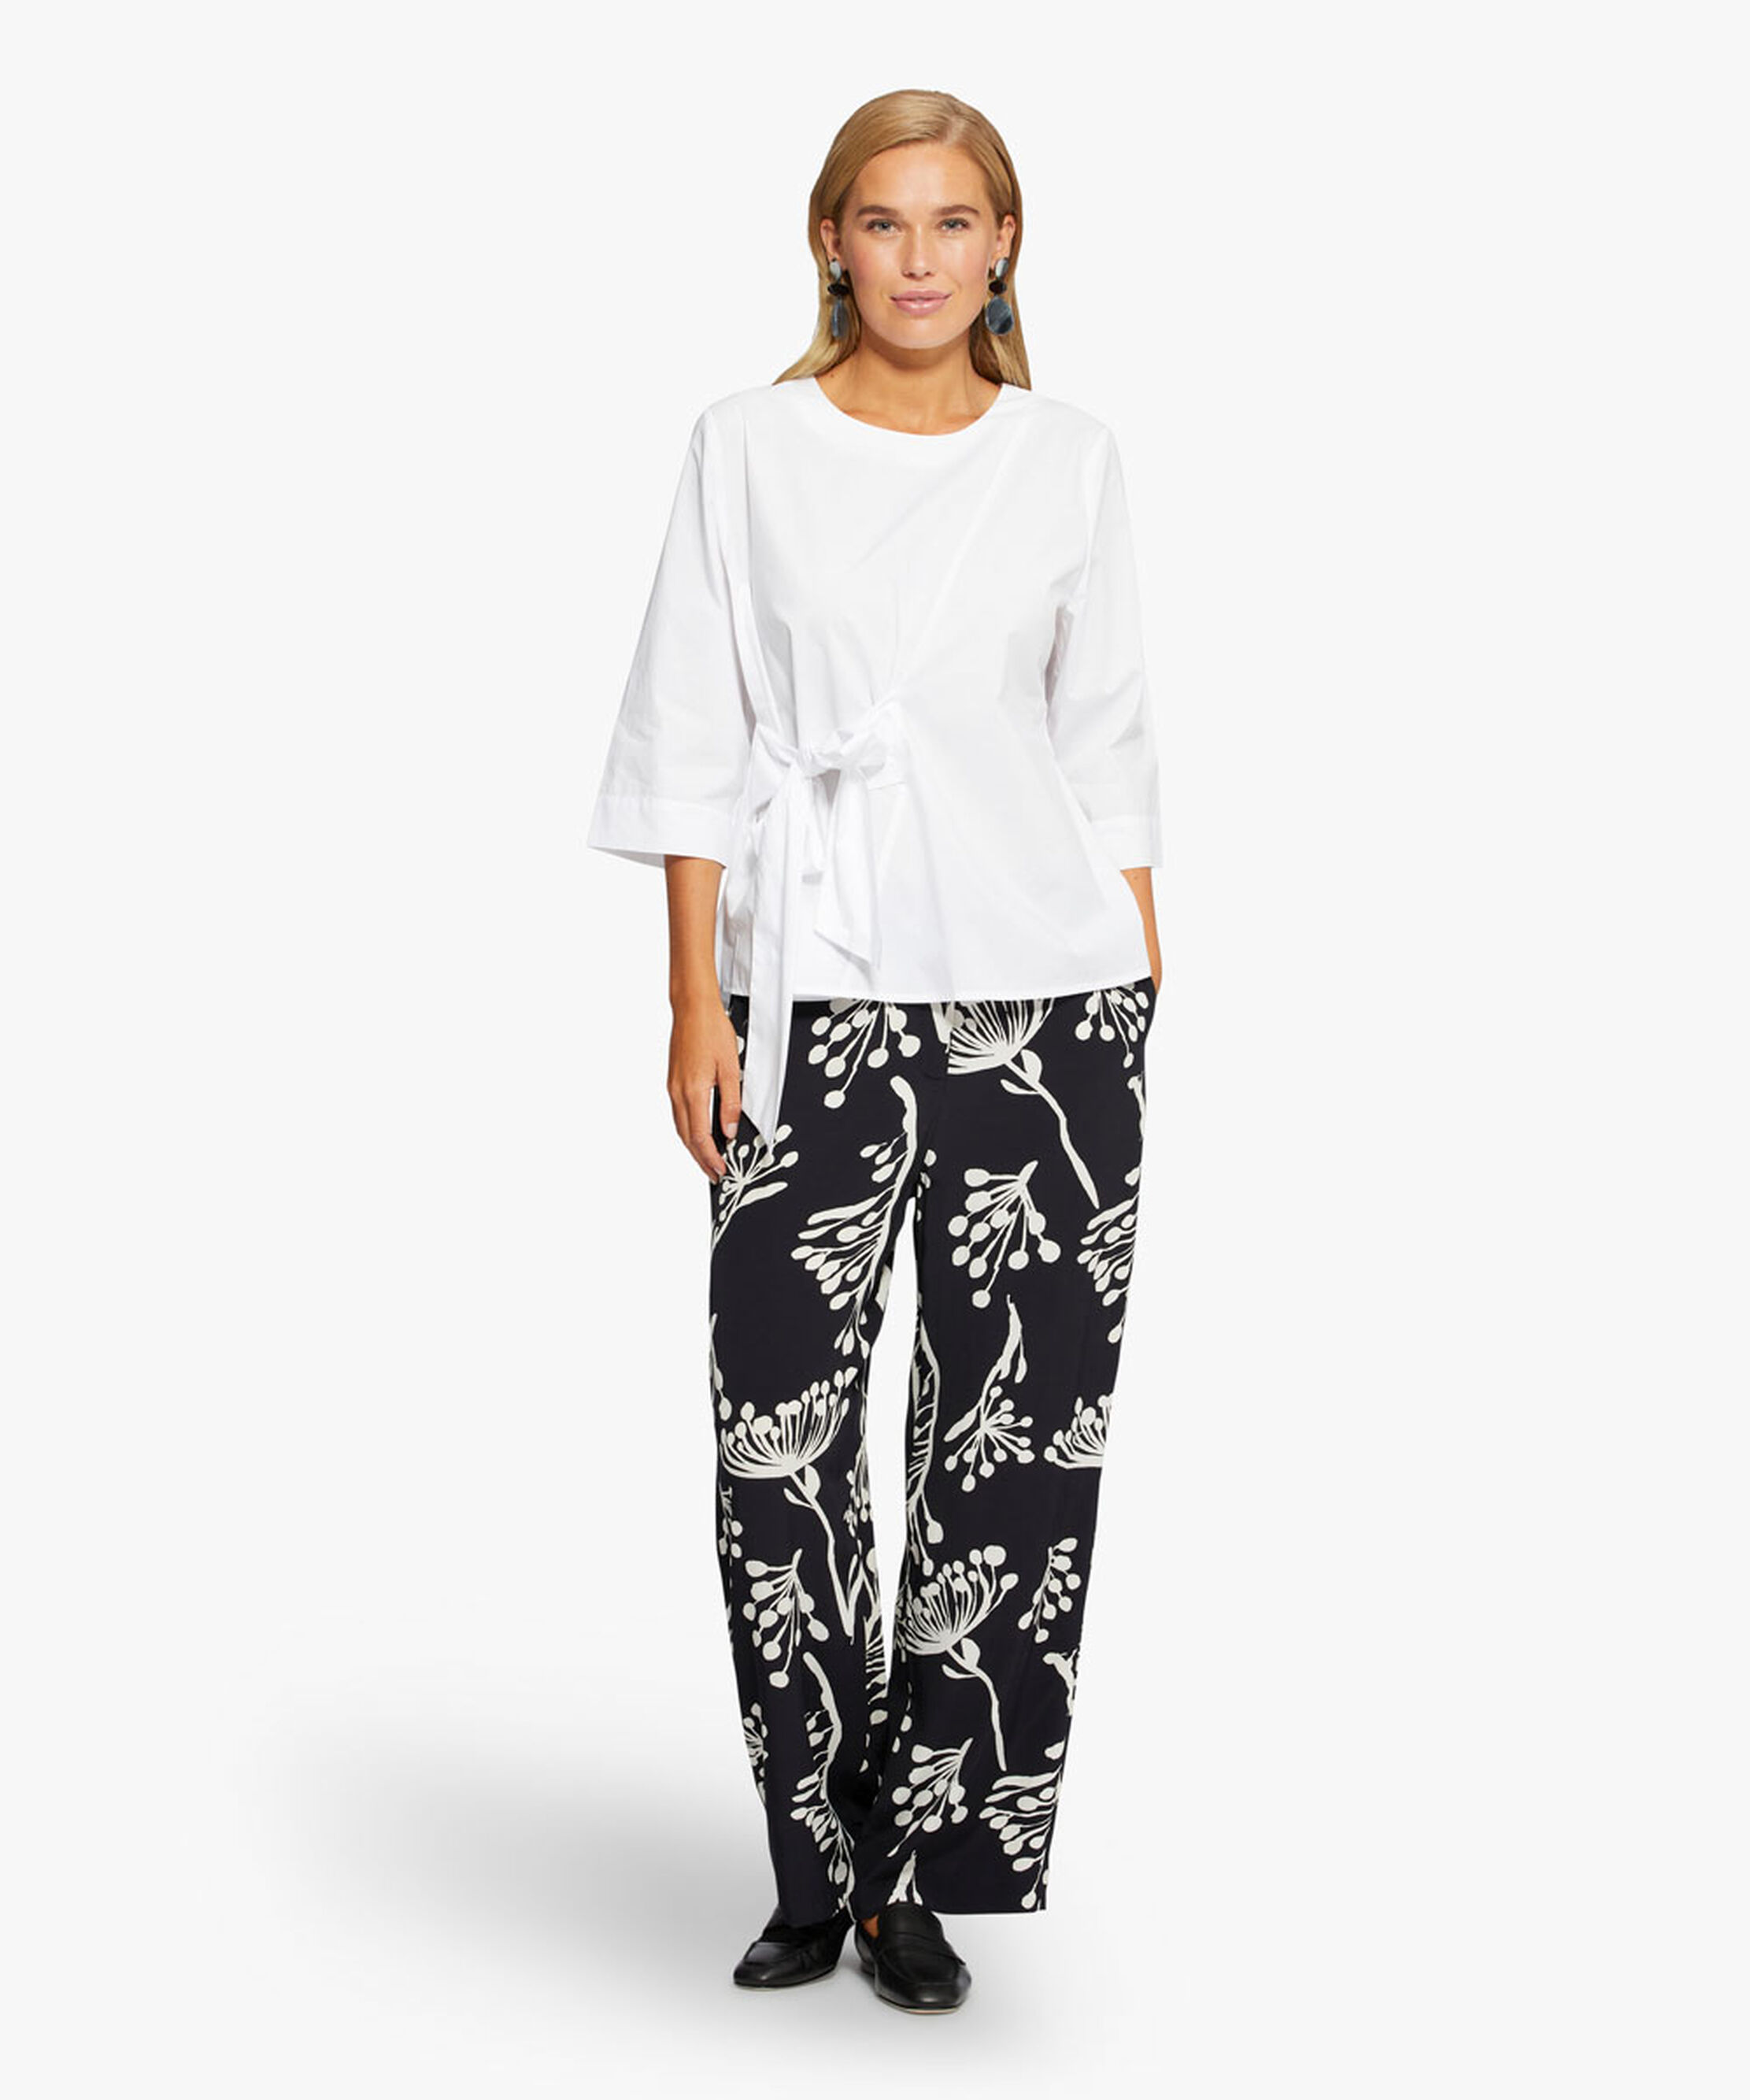 PERINUA TROUSERS, Black, hi-res